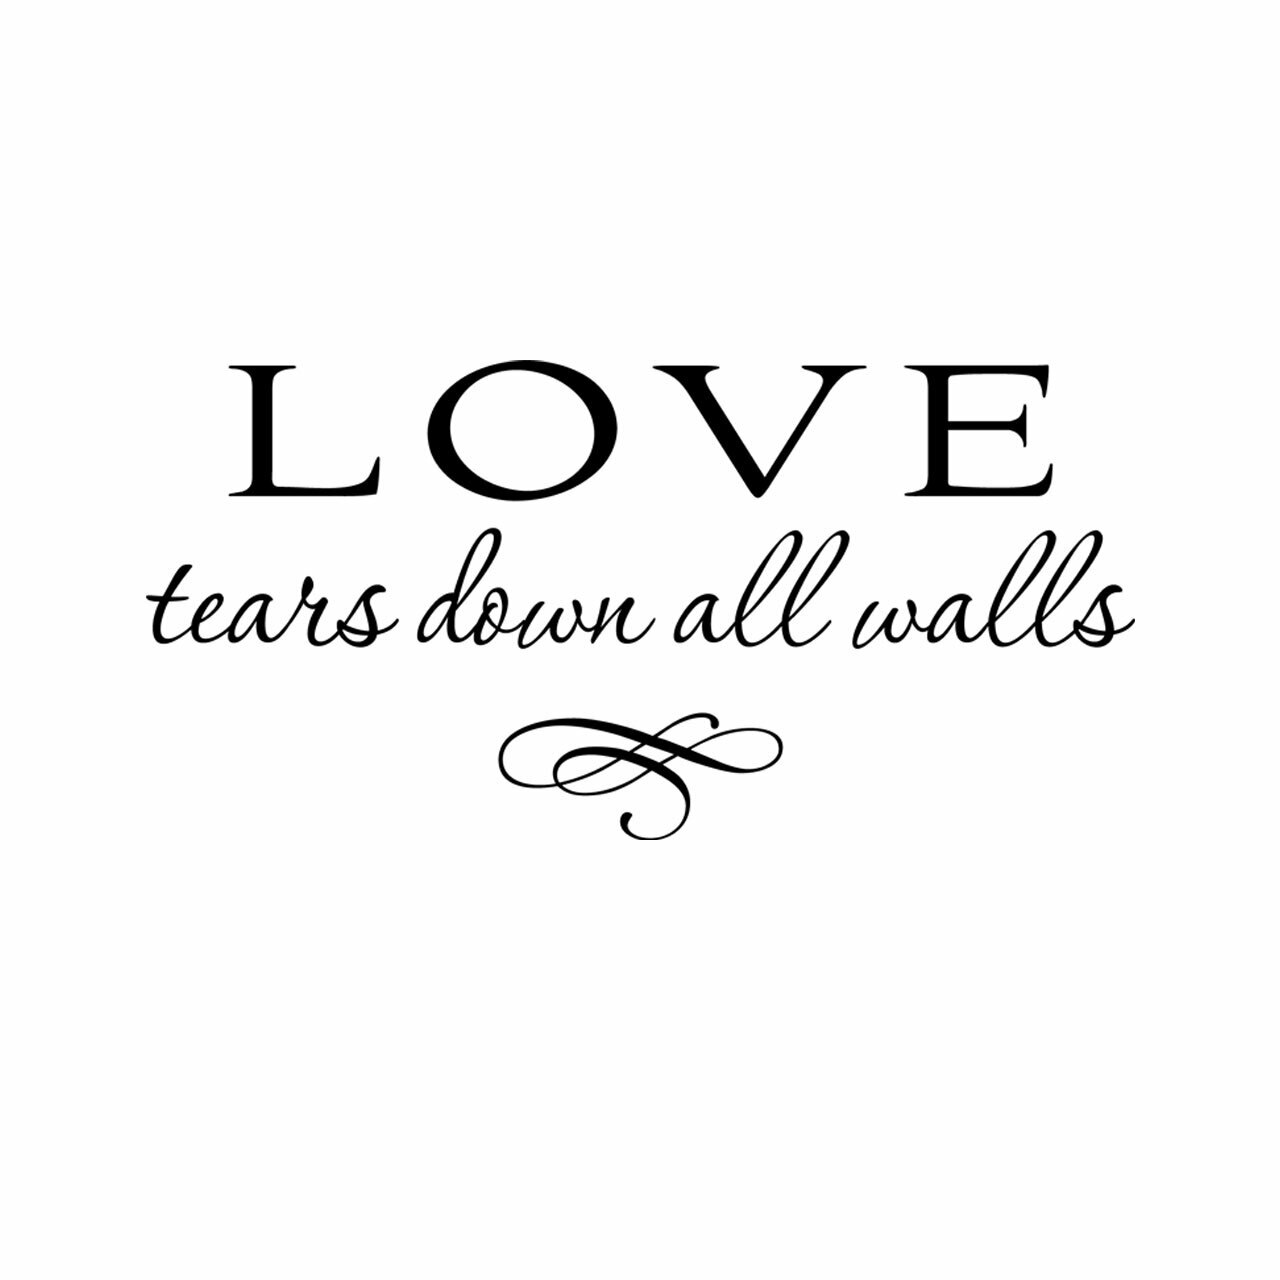 Love tears down all walls vinyl lettering layout in black on a white background